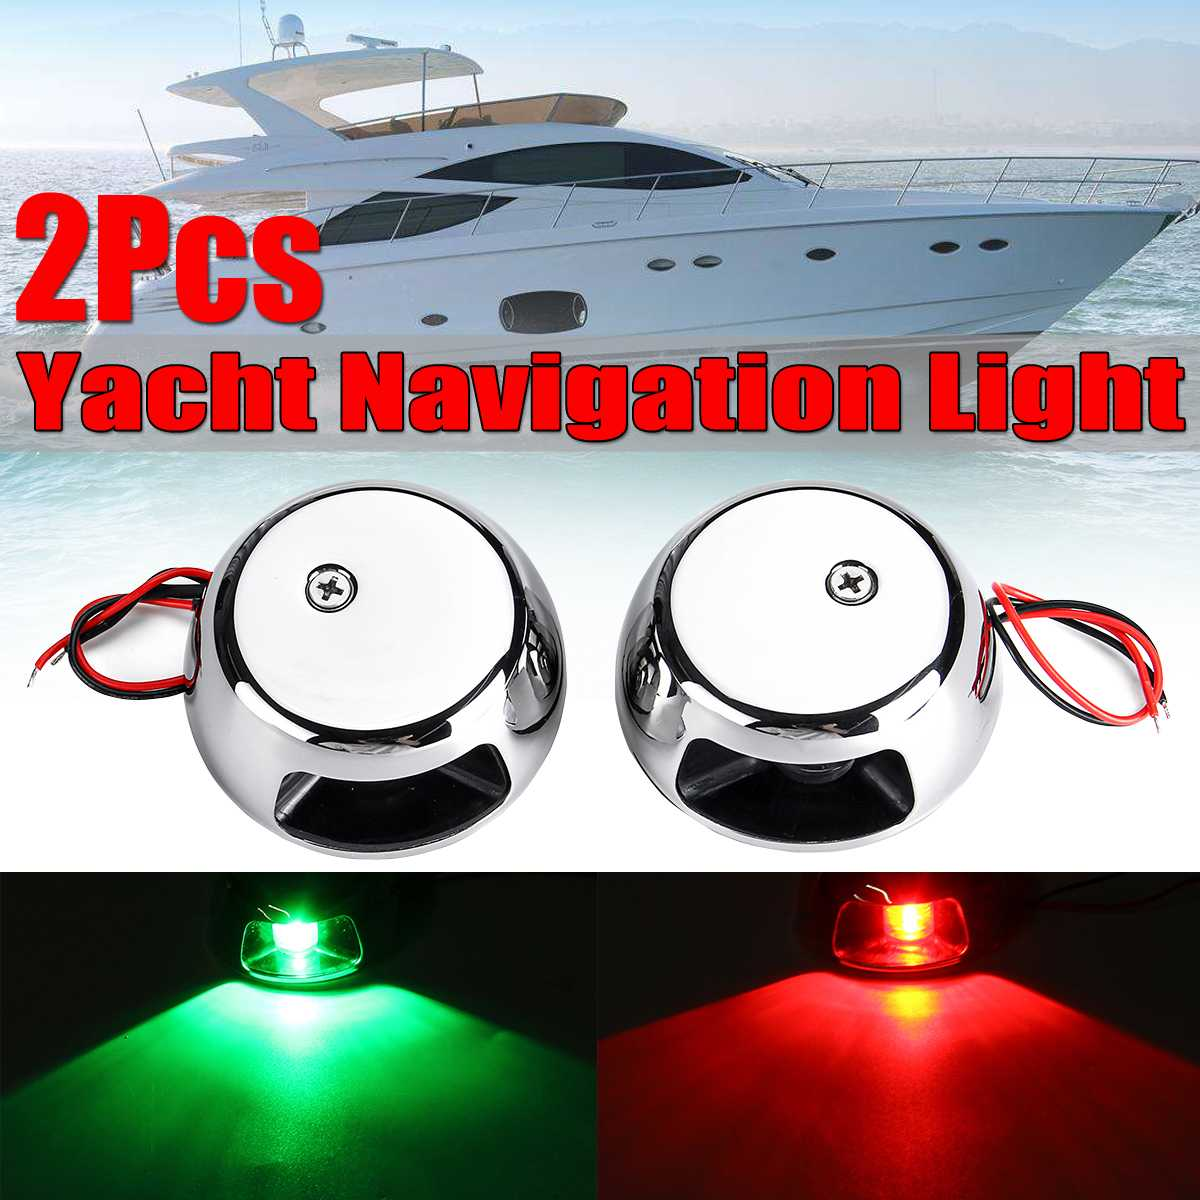 2pcs 12V LED Light LED Navigation Light Bulb E011006 For Marine Boat Yacht Starboard Stainless Steel Red Green Light 12V Boat